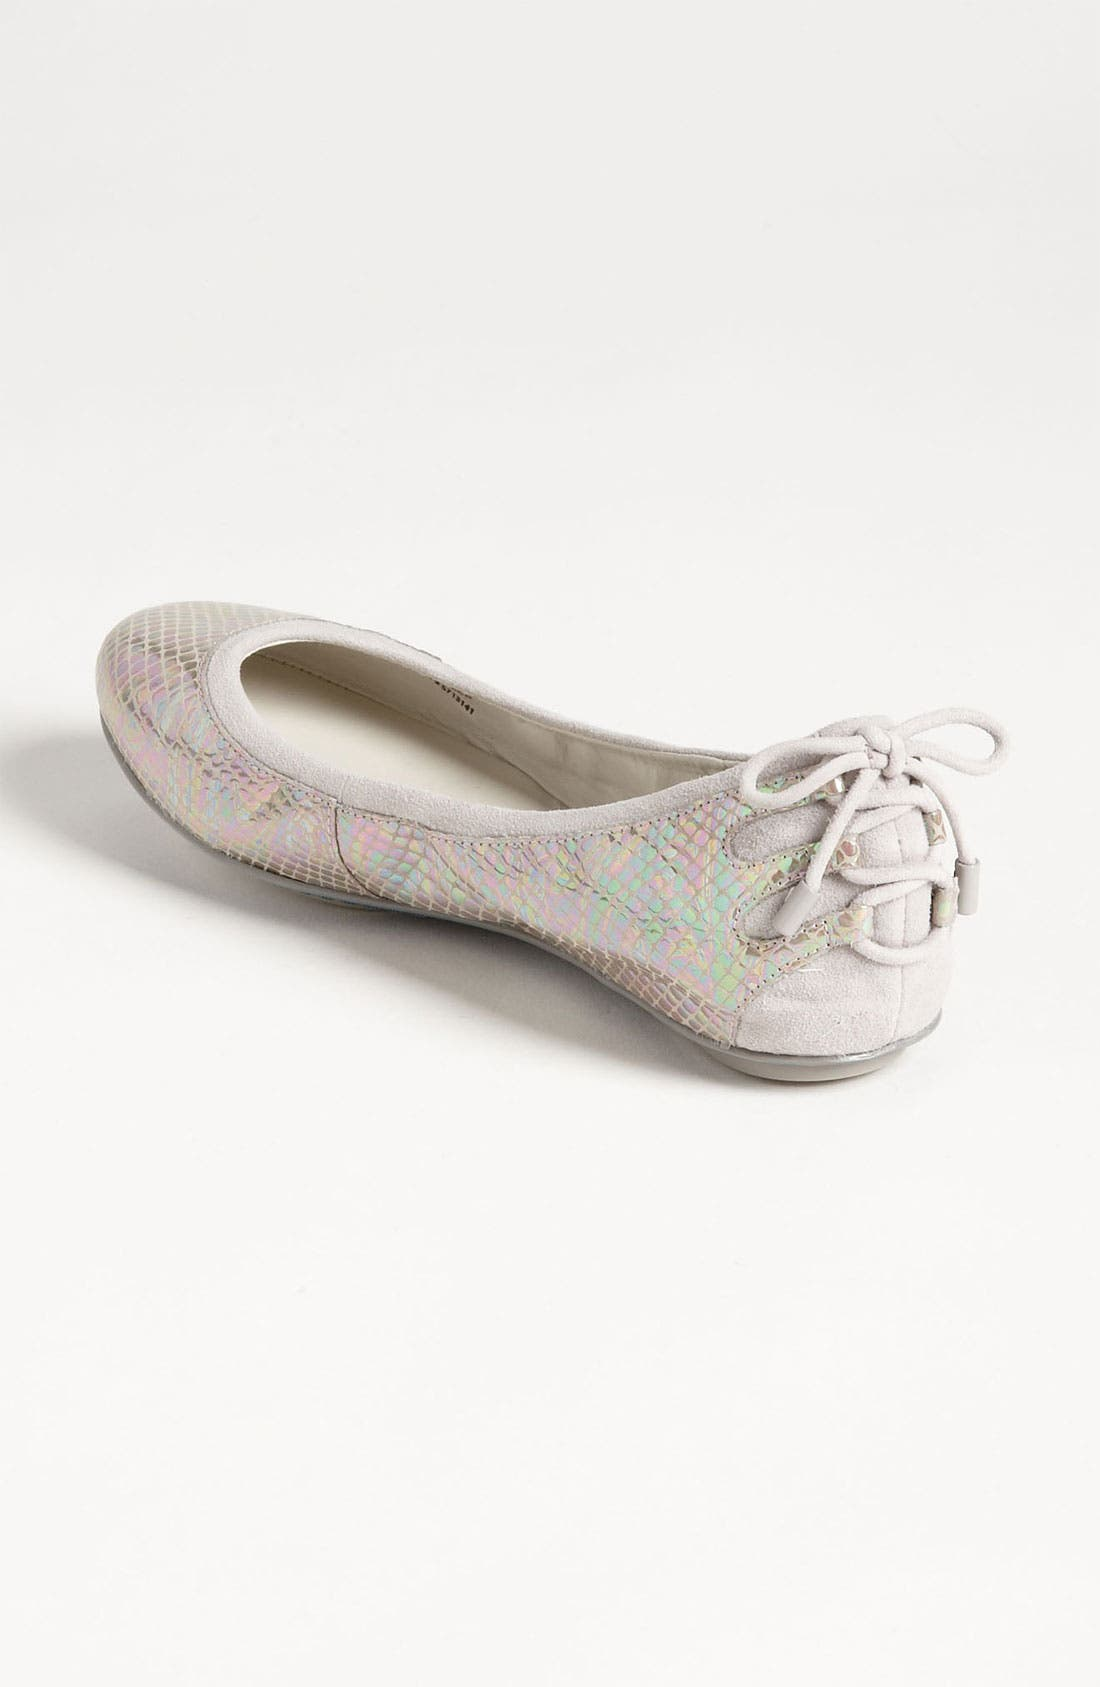 ,                             Maria Sharapova by Cole Haan 'Air Bacara' Flat,                             Alternate thumbnail 25, color,                             043